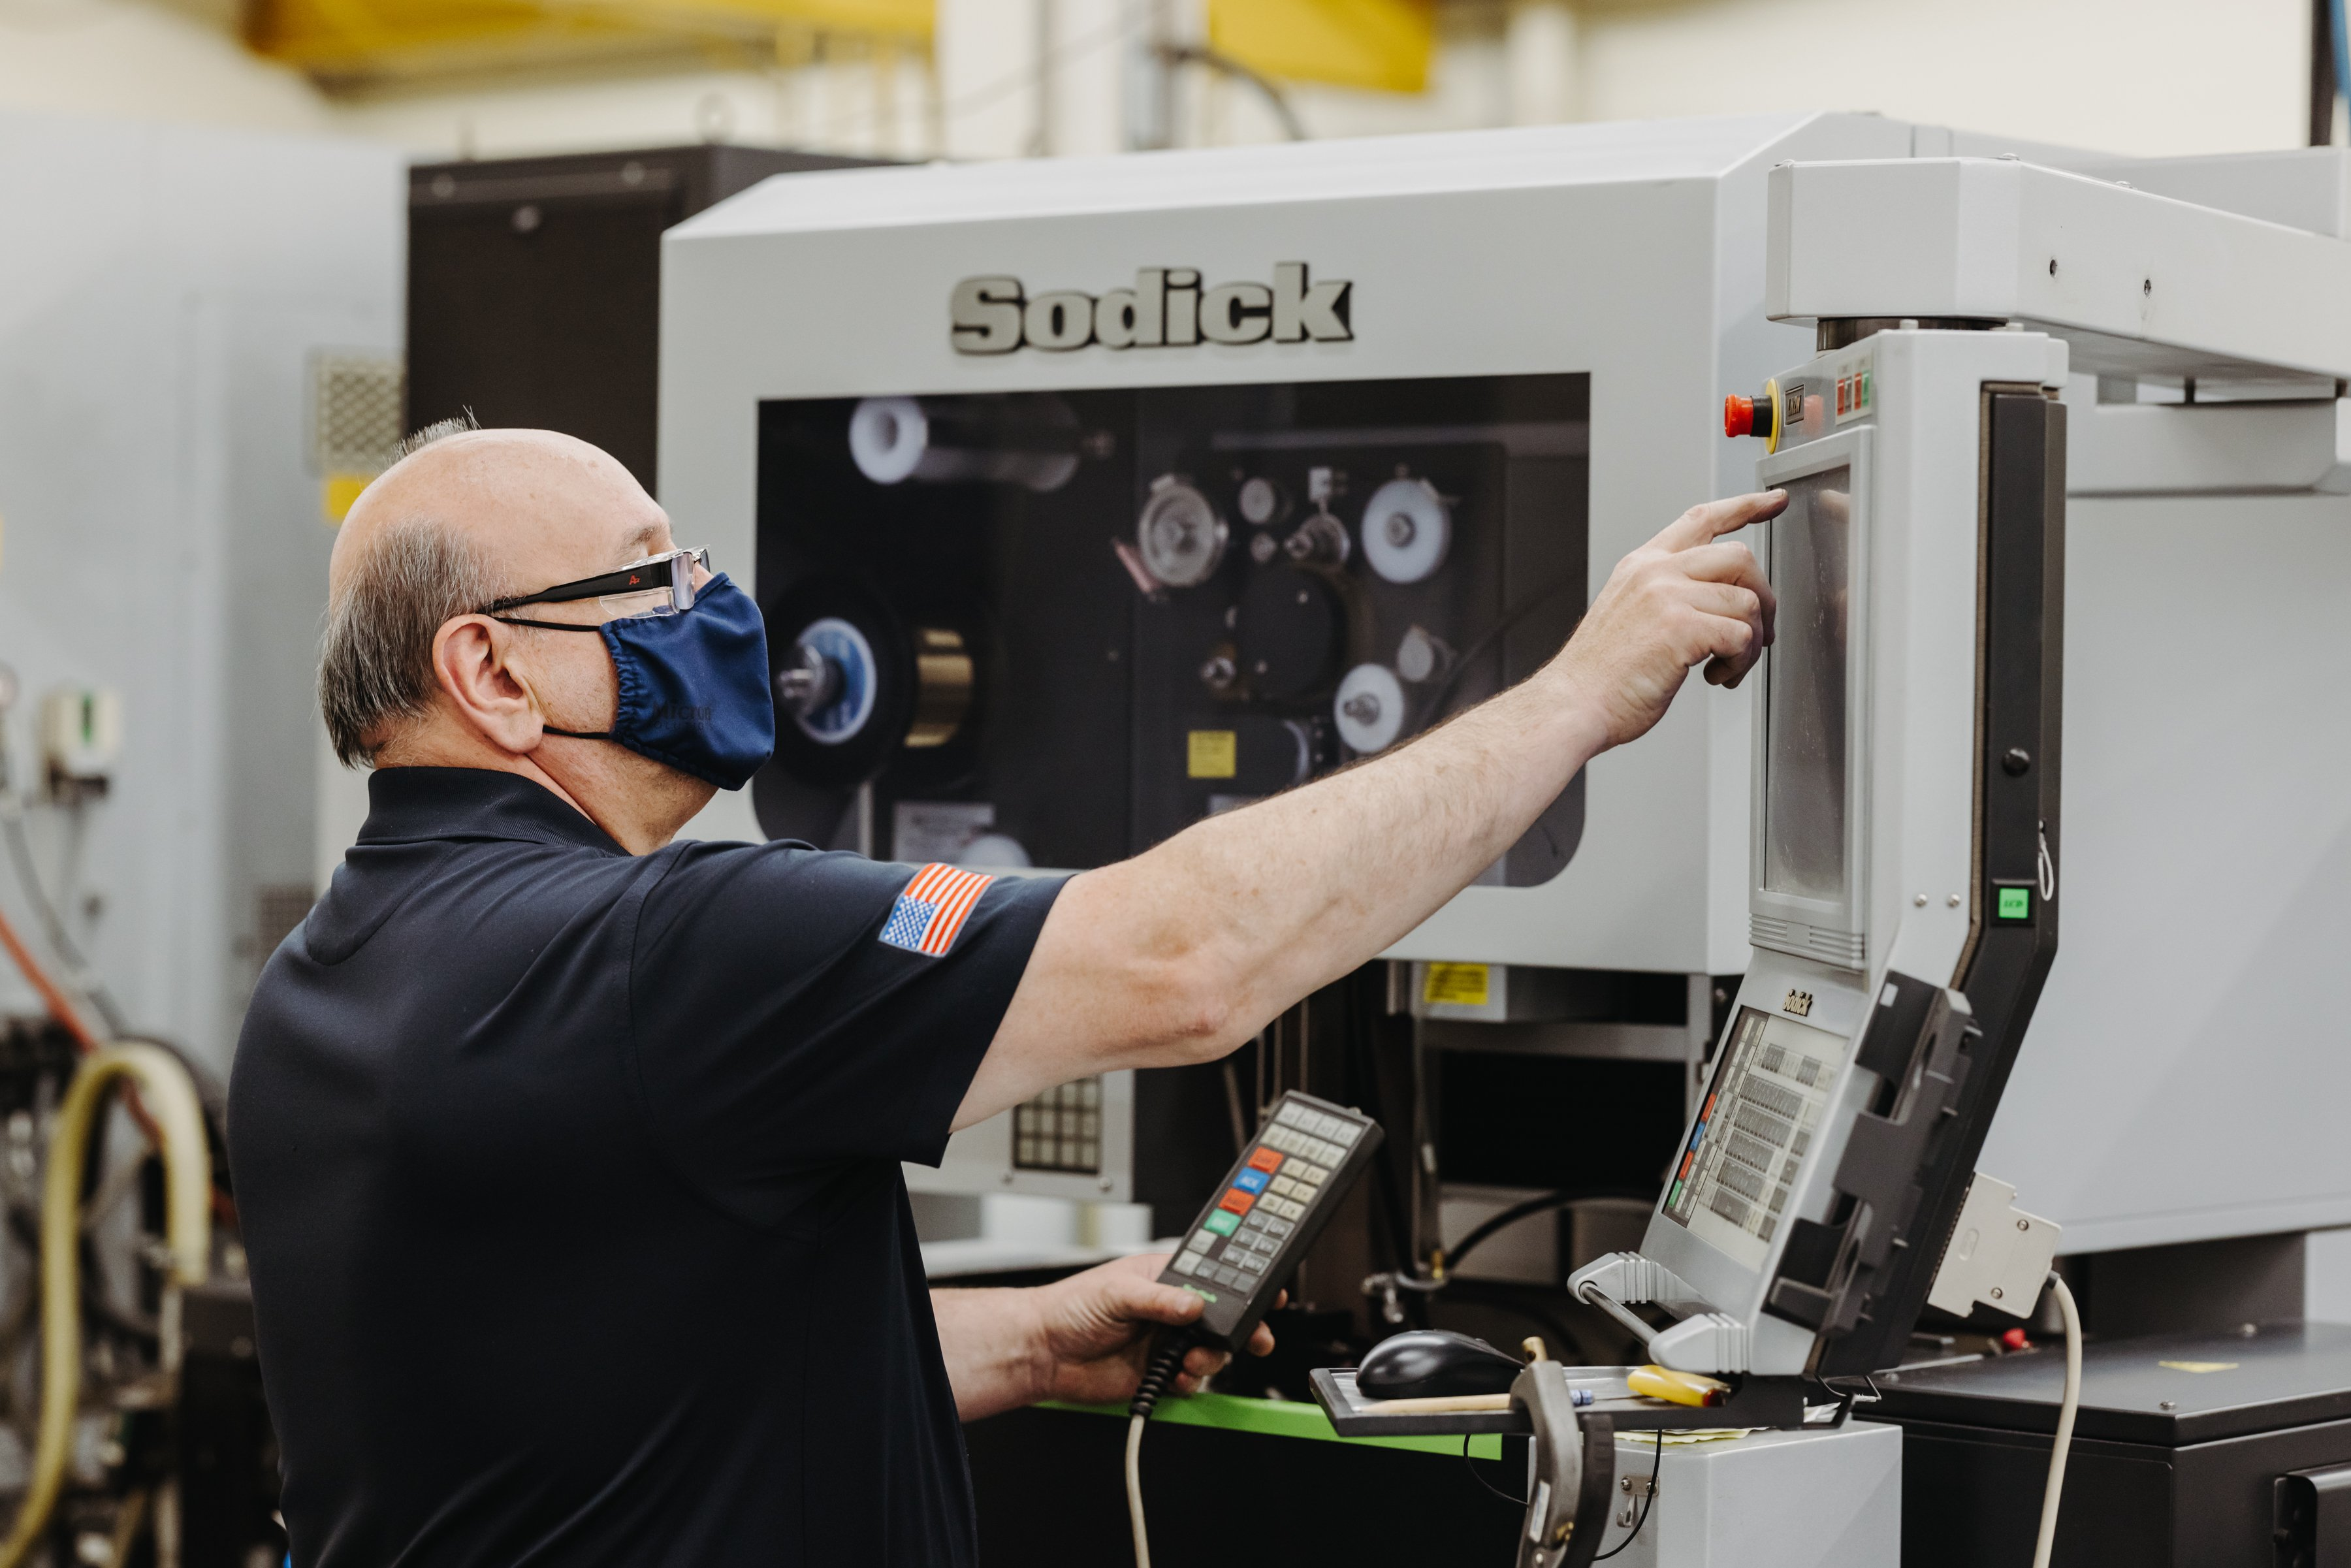 A man wearing a blue mask points to the screen of a CNC machine